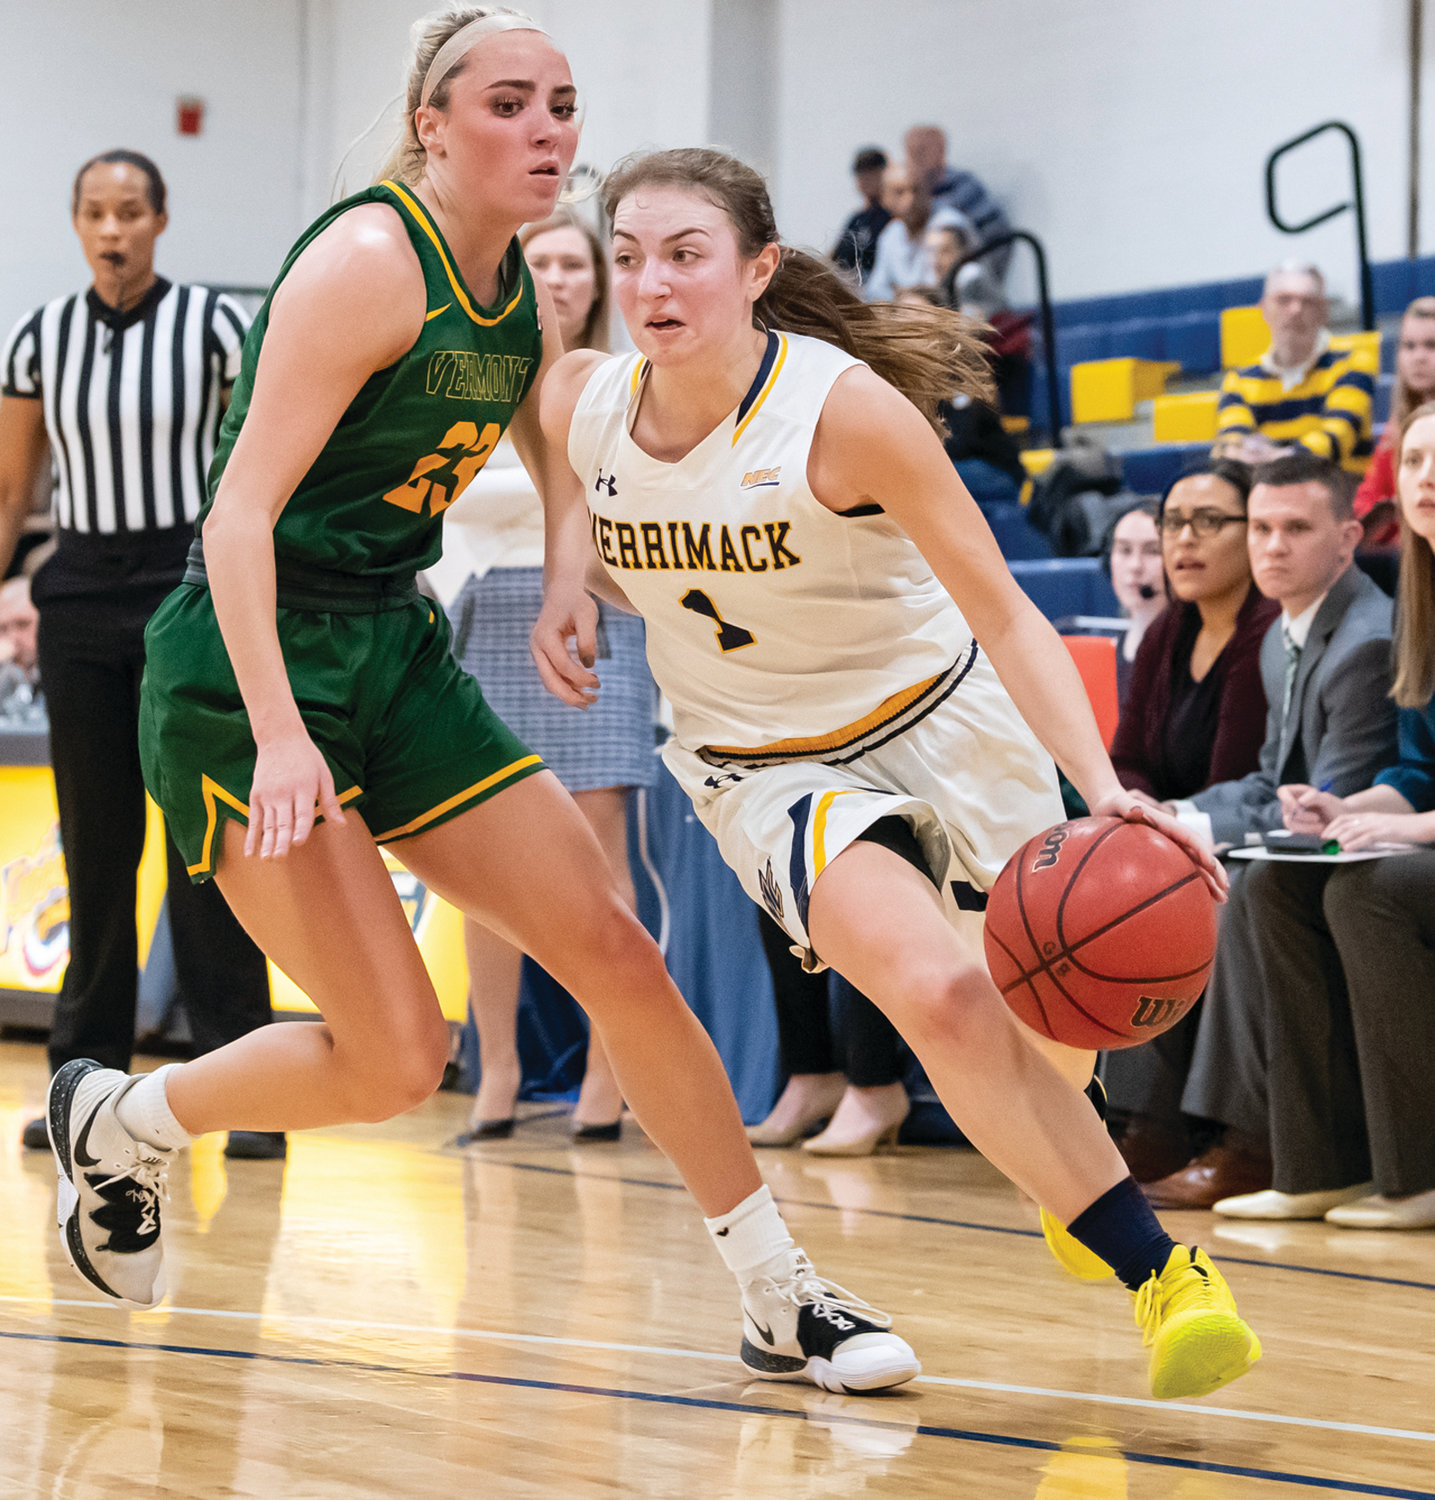 RUNNIN' ROOKIE: Johnston's Jayme DeCesare has been dribbling past all opponents in her freshman season at Merrimack College in North Andover, Ma. and just last week the daughter of David and Joann DeCesare was named the Northeast Conference's Co-Rookie of the Week. RUNNIN' ROOKIE: Johnston's Jayme DeCesare has been dribbling past all opponents in her freshman season at Merrimack College in North Andover, Ma. and just last week the daughter of David and Joann DeCesare was named the Northeast Conference's Co-Rookie of the Week.